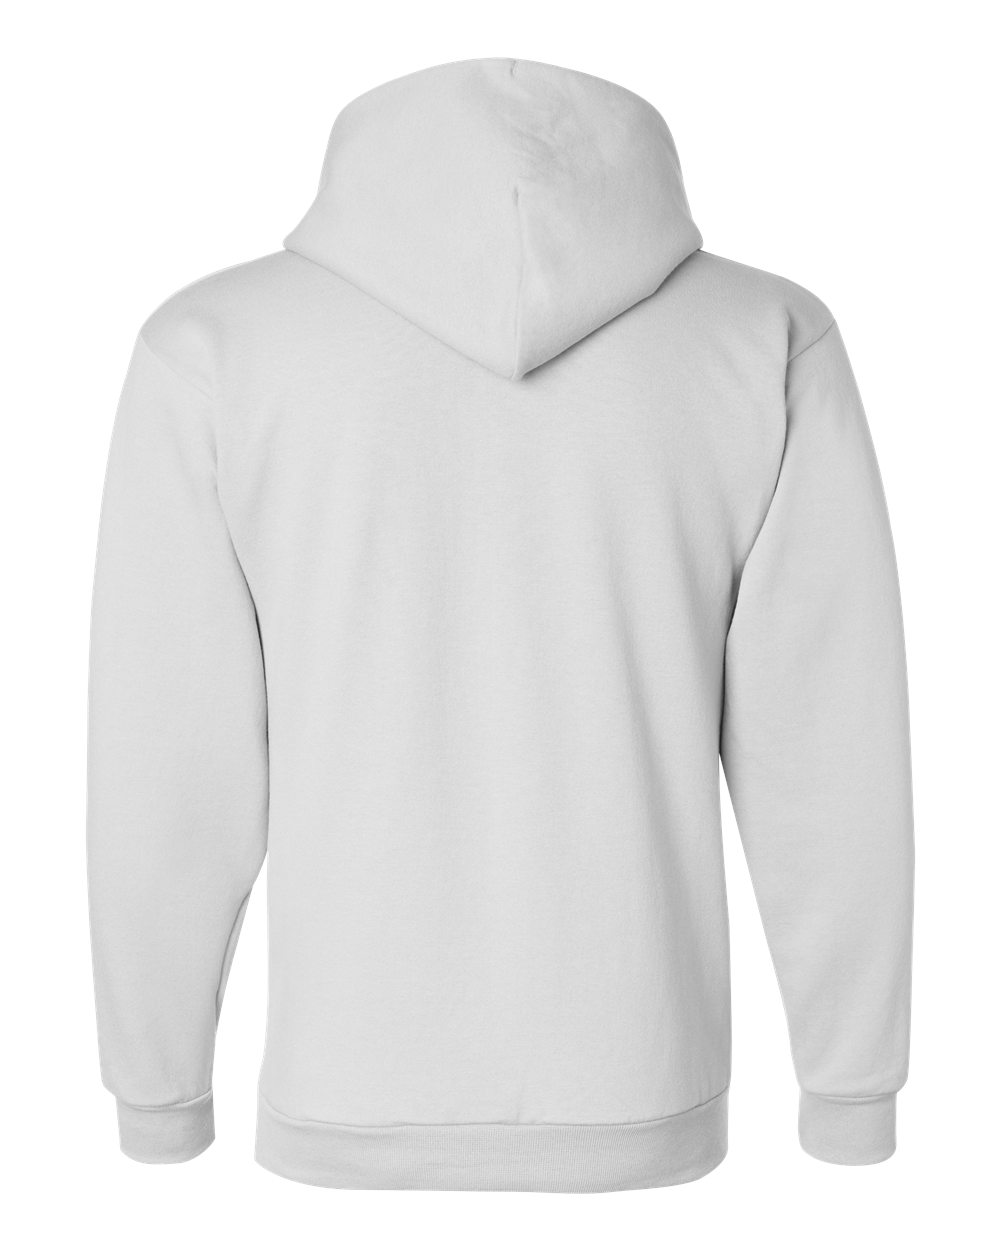 Champion-Mens-Double-Dry-Eco-Hooded-Sweatshirt-Hoodie-Pullover-S700-up-to-3XL miniature 46